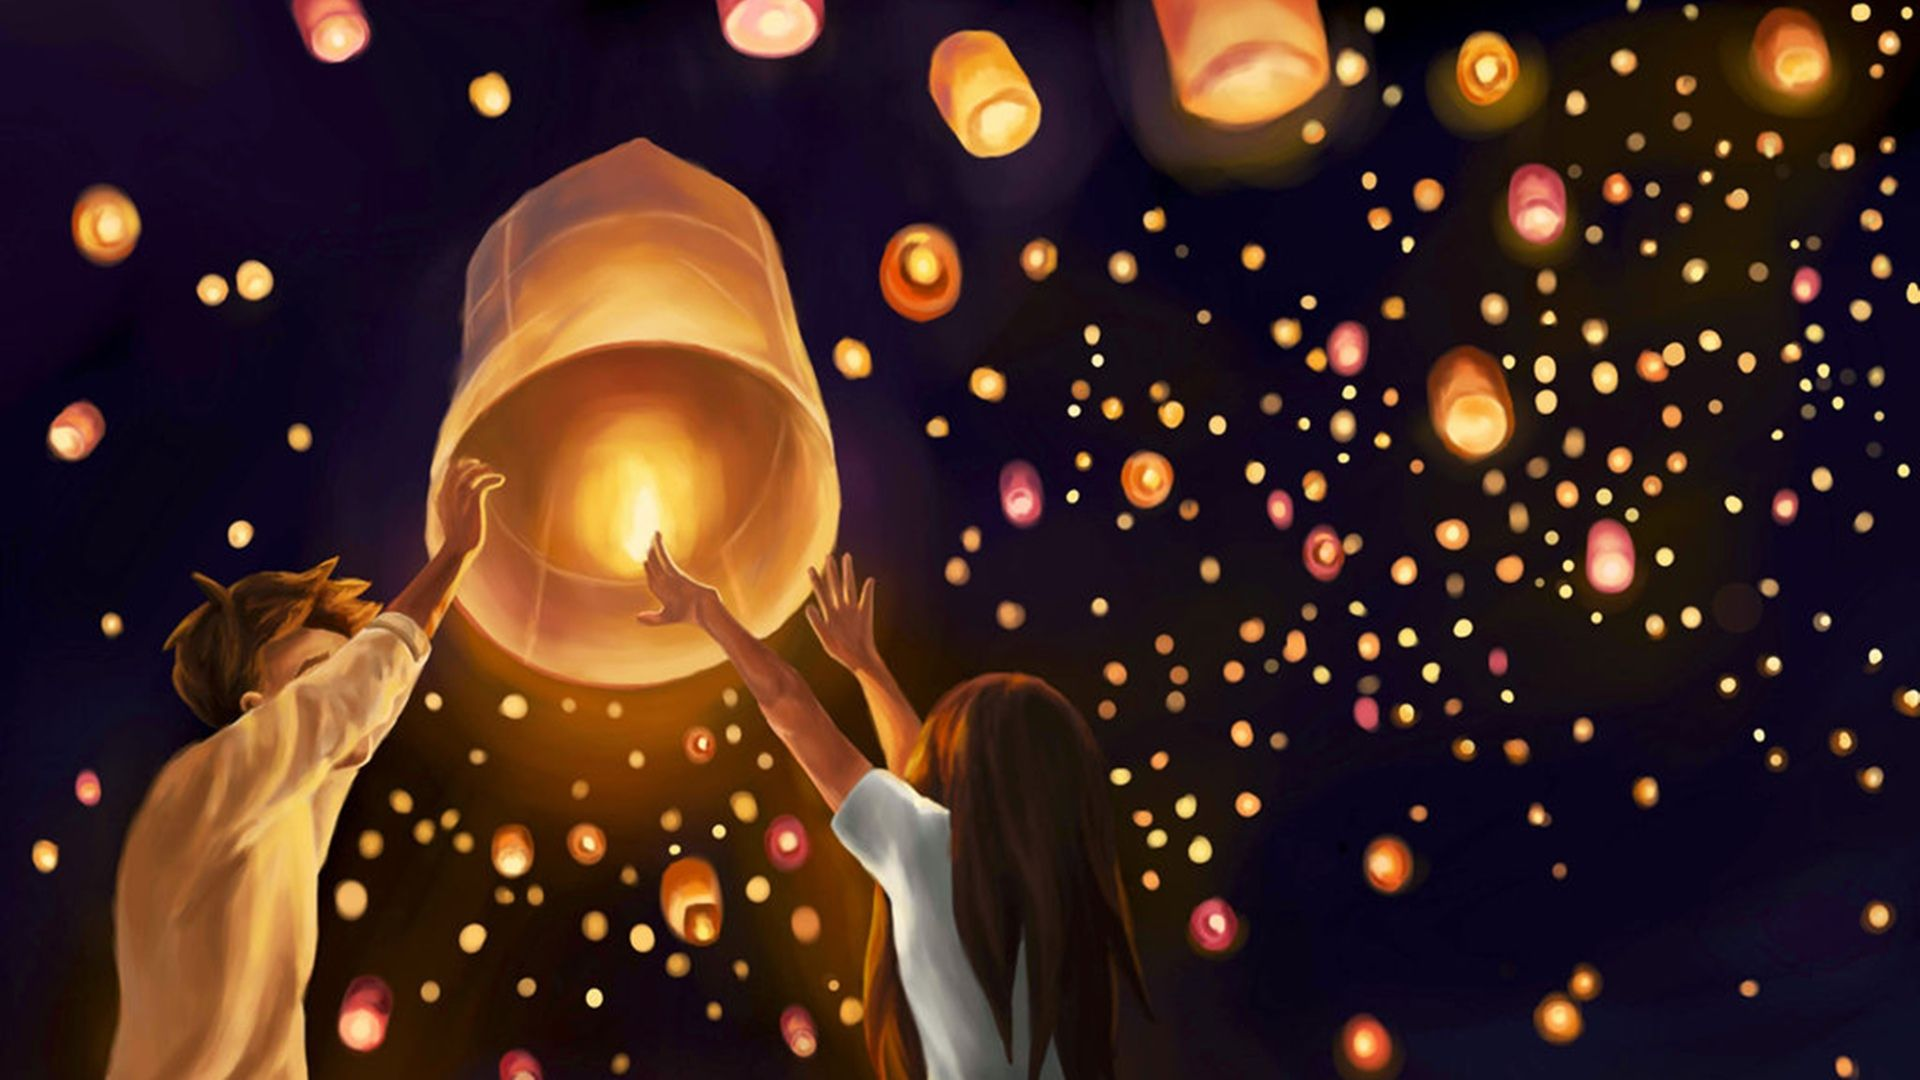 Sky Lantern Wallpapers Top Free Sky Lantern Backgrounds Wallpaperaccess